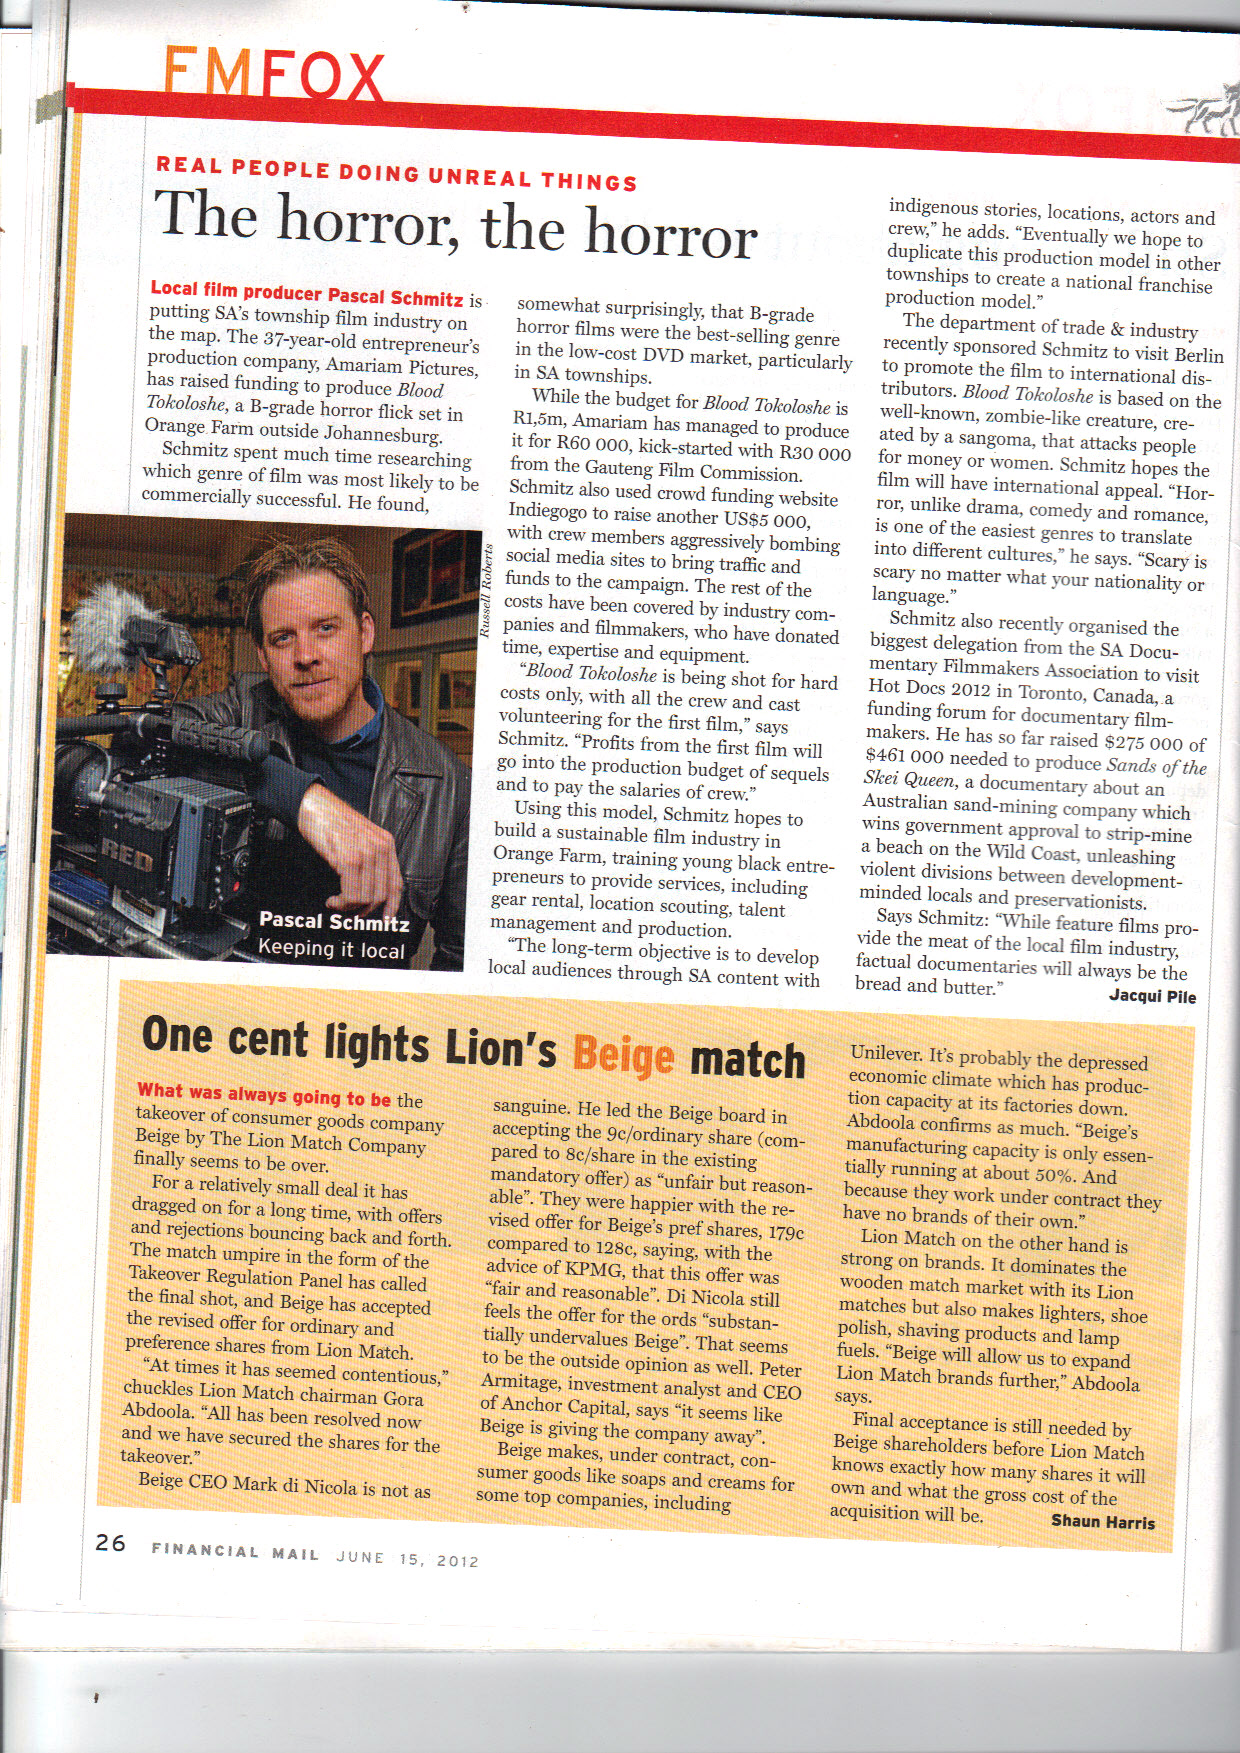 Article on the producer Pascal Schmitz in the Financial Mail